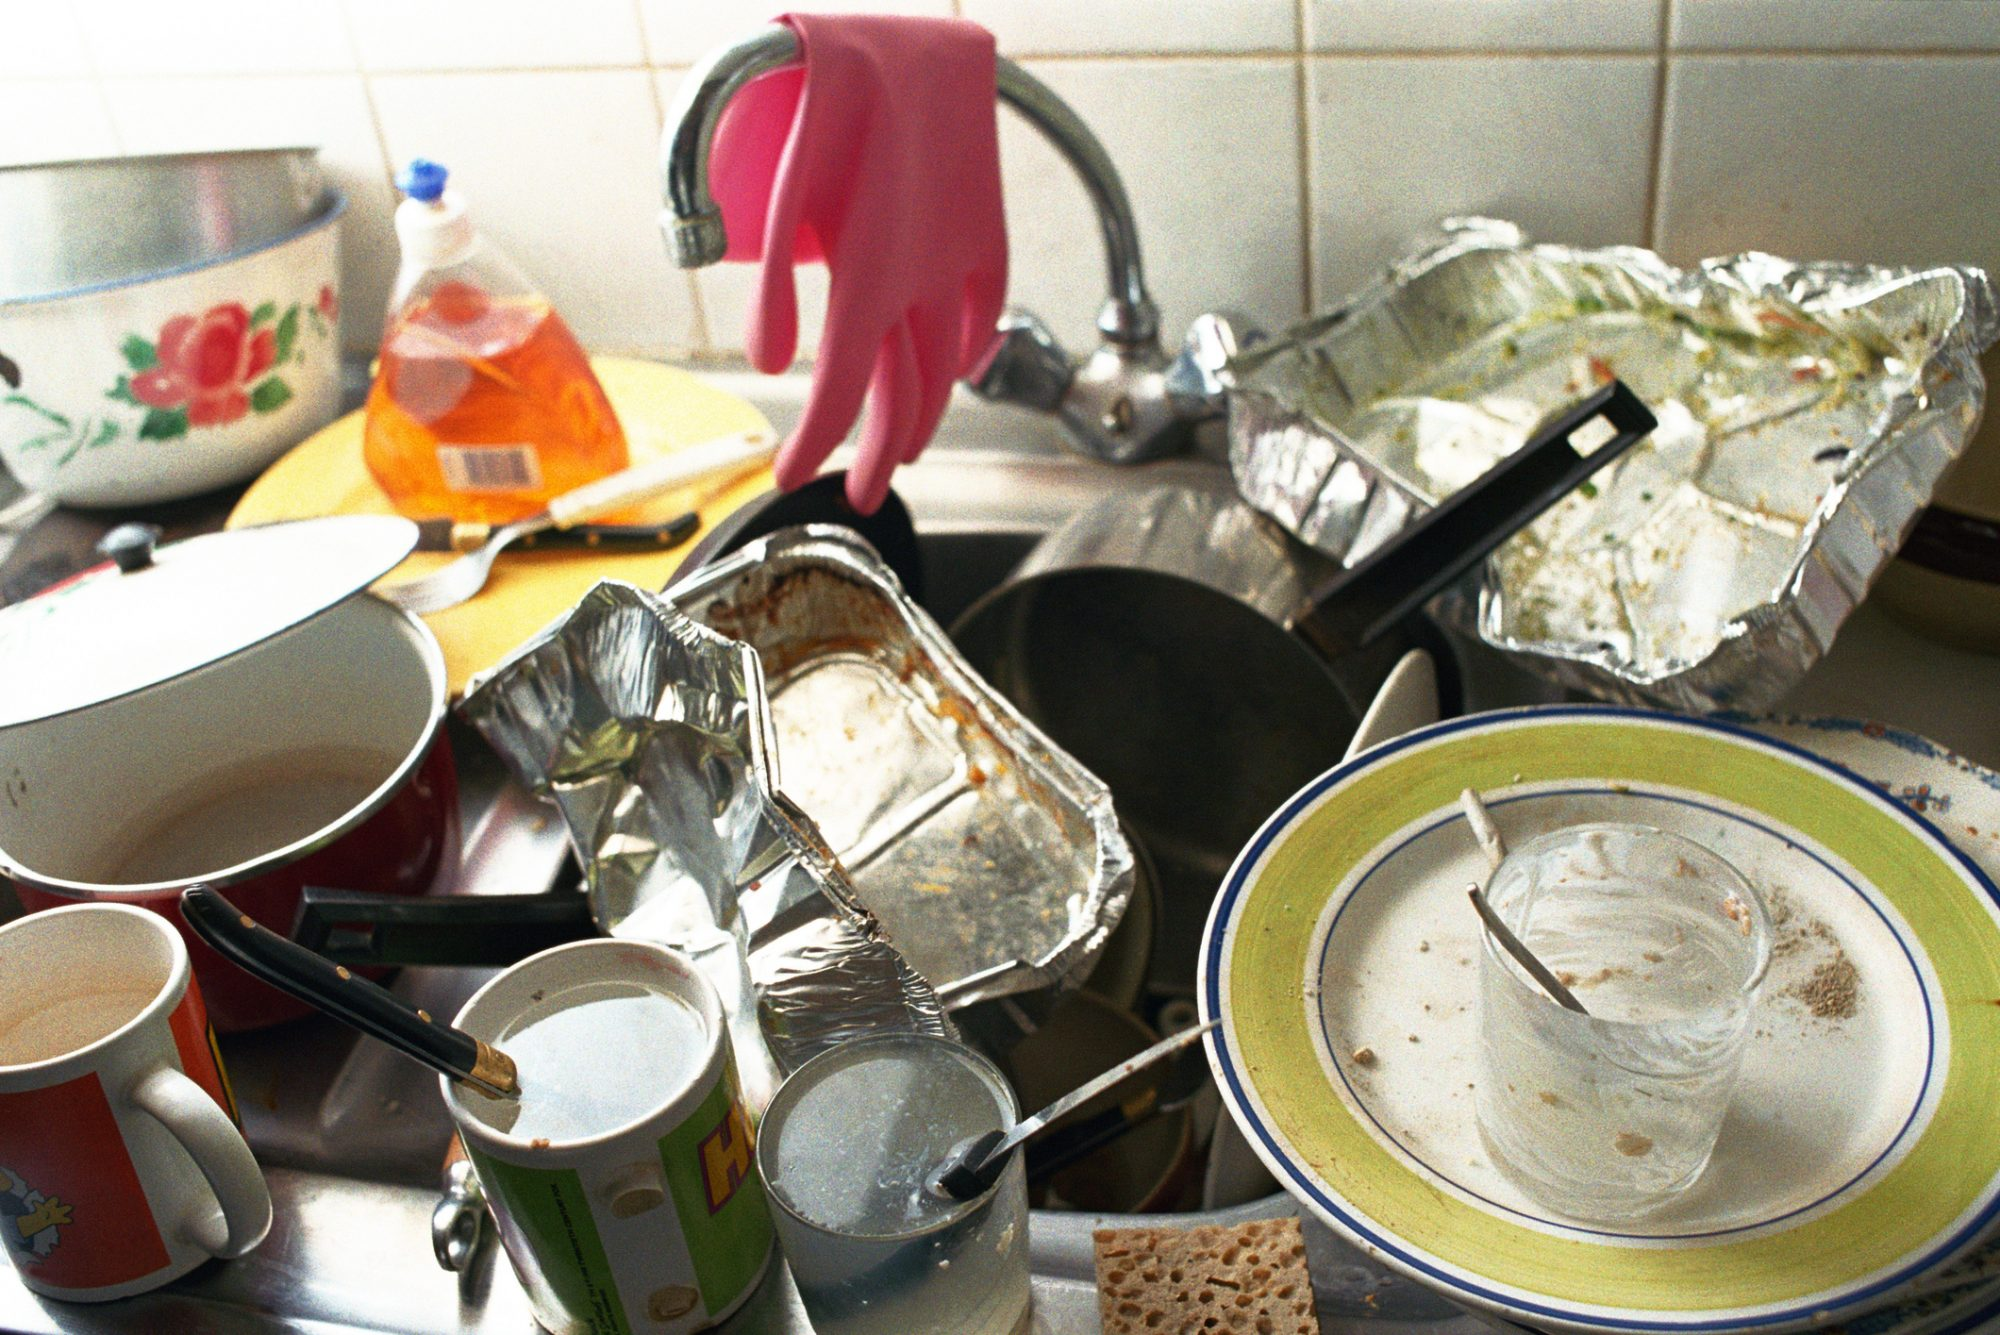 Kitchen items to throw out